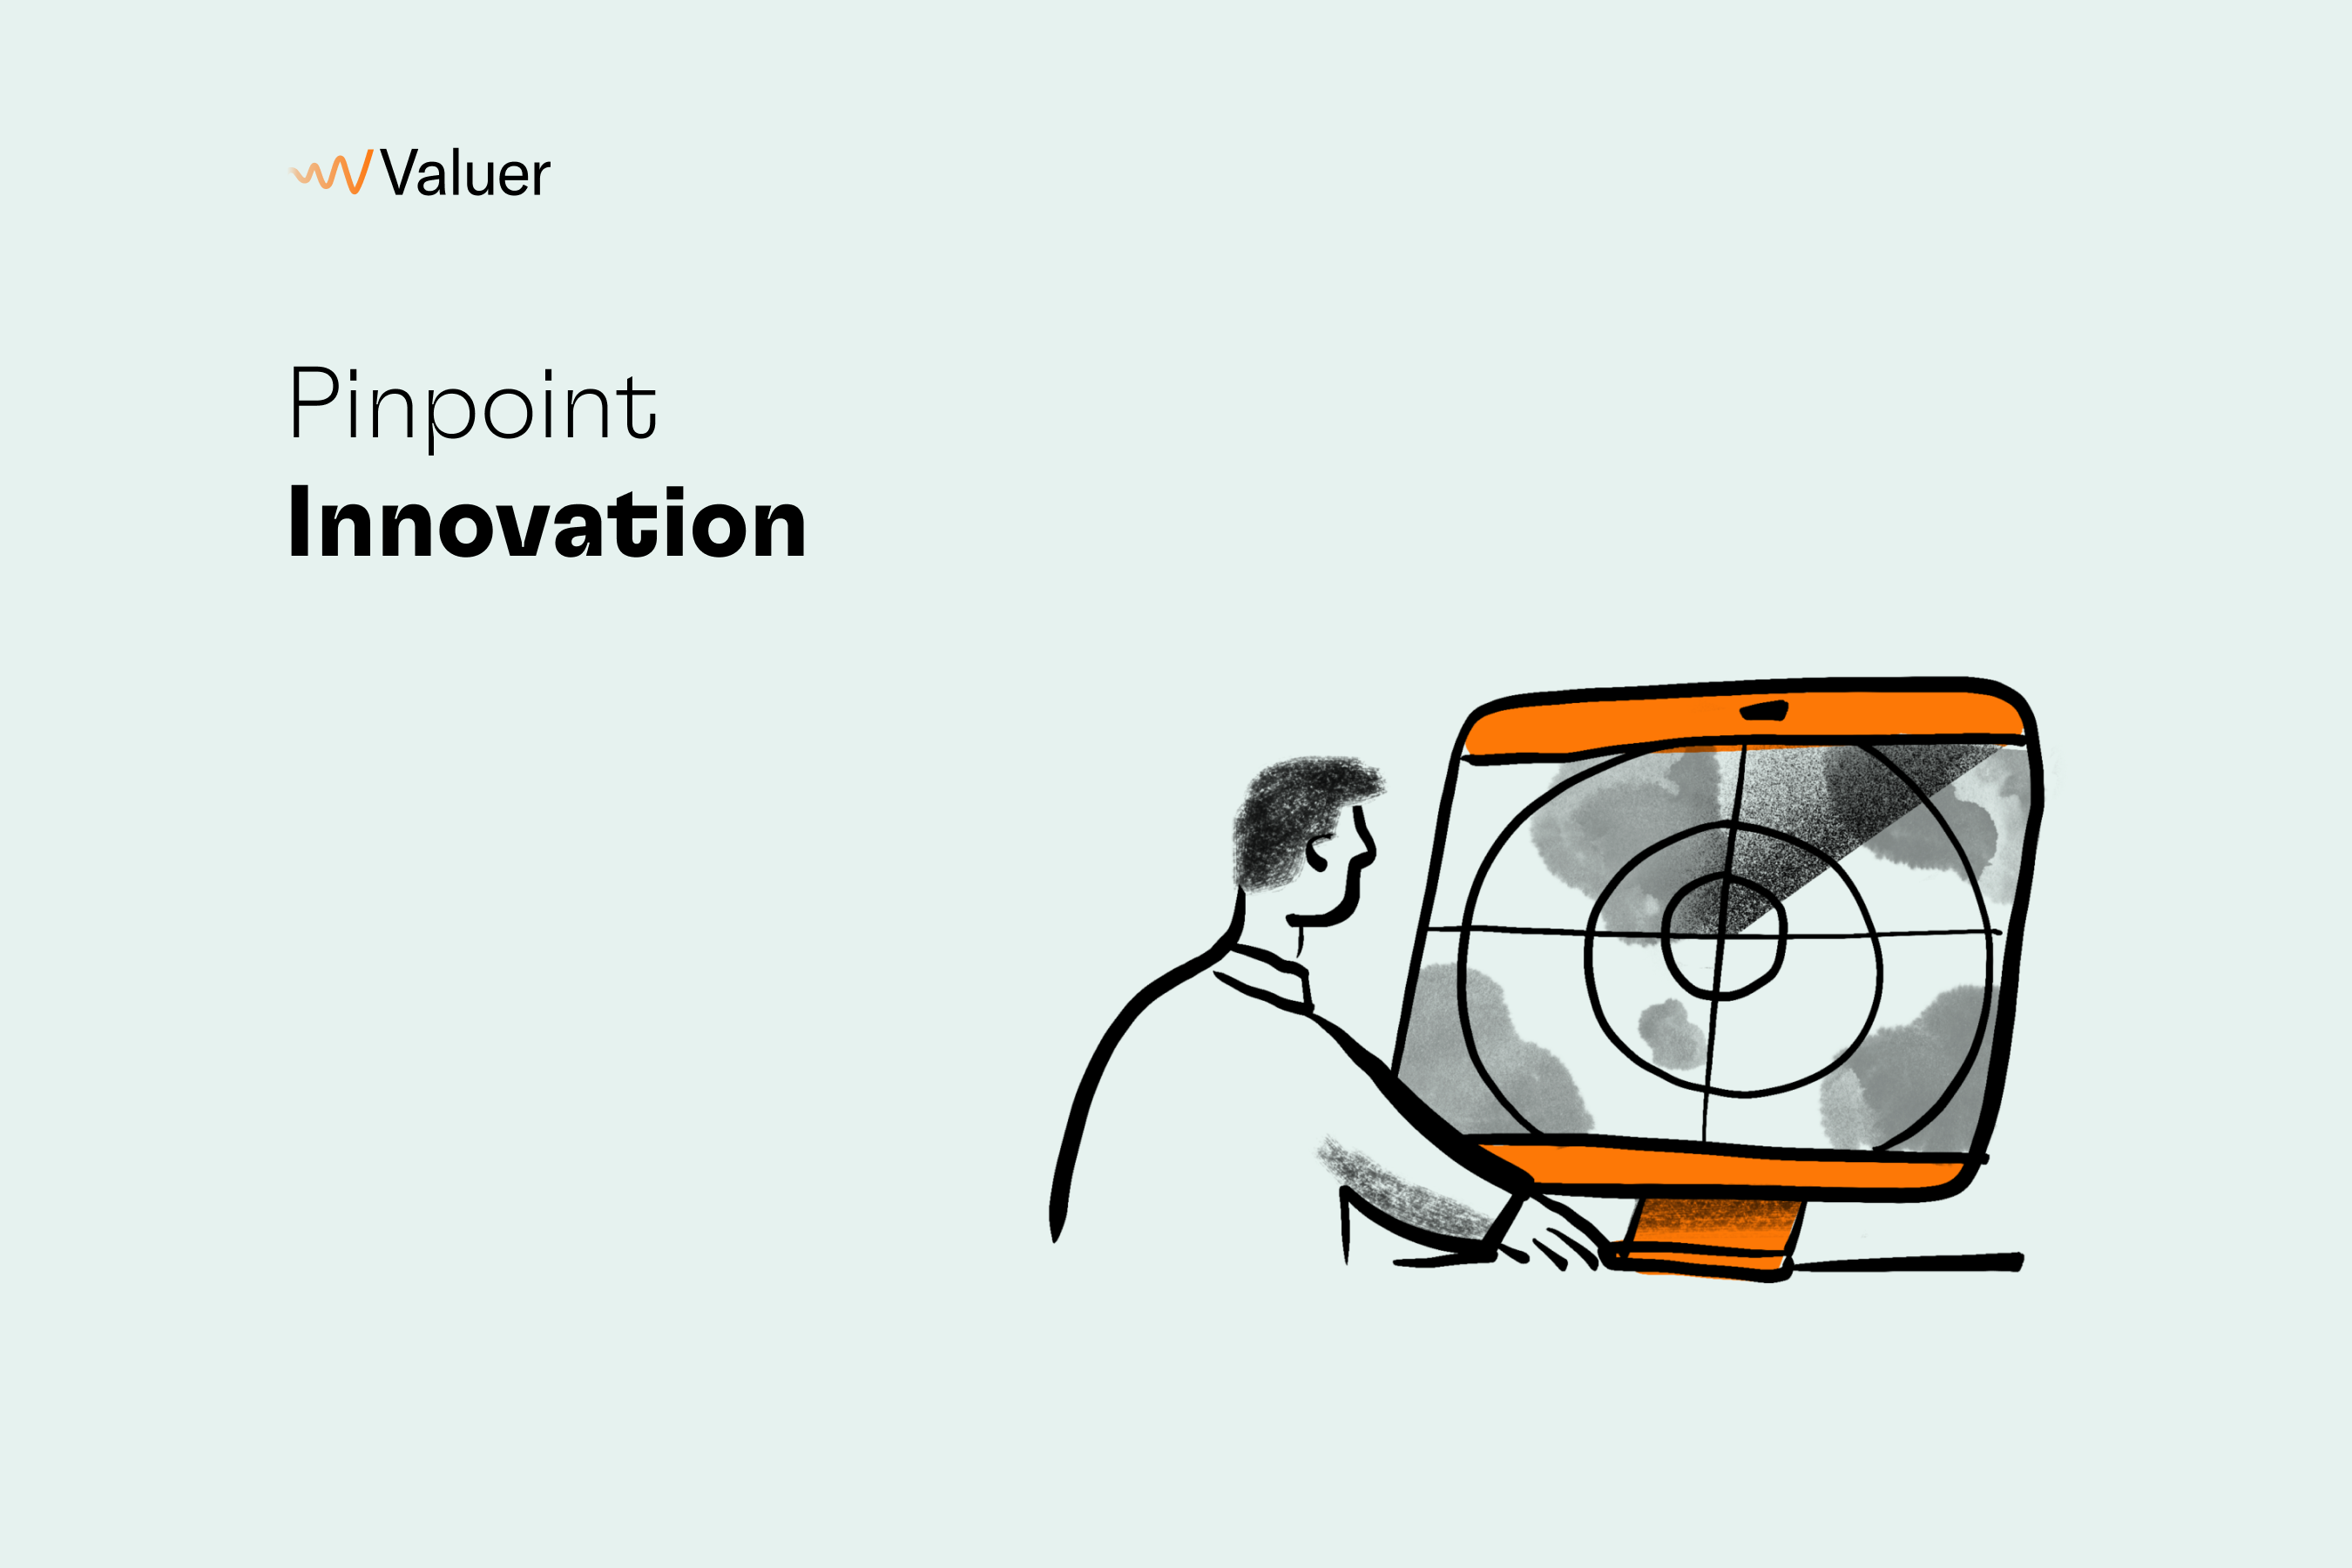 Pinpoint Innovation